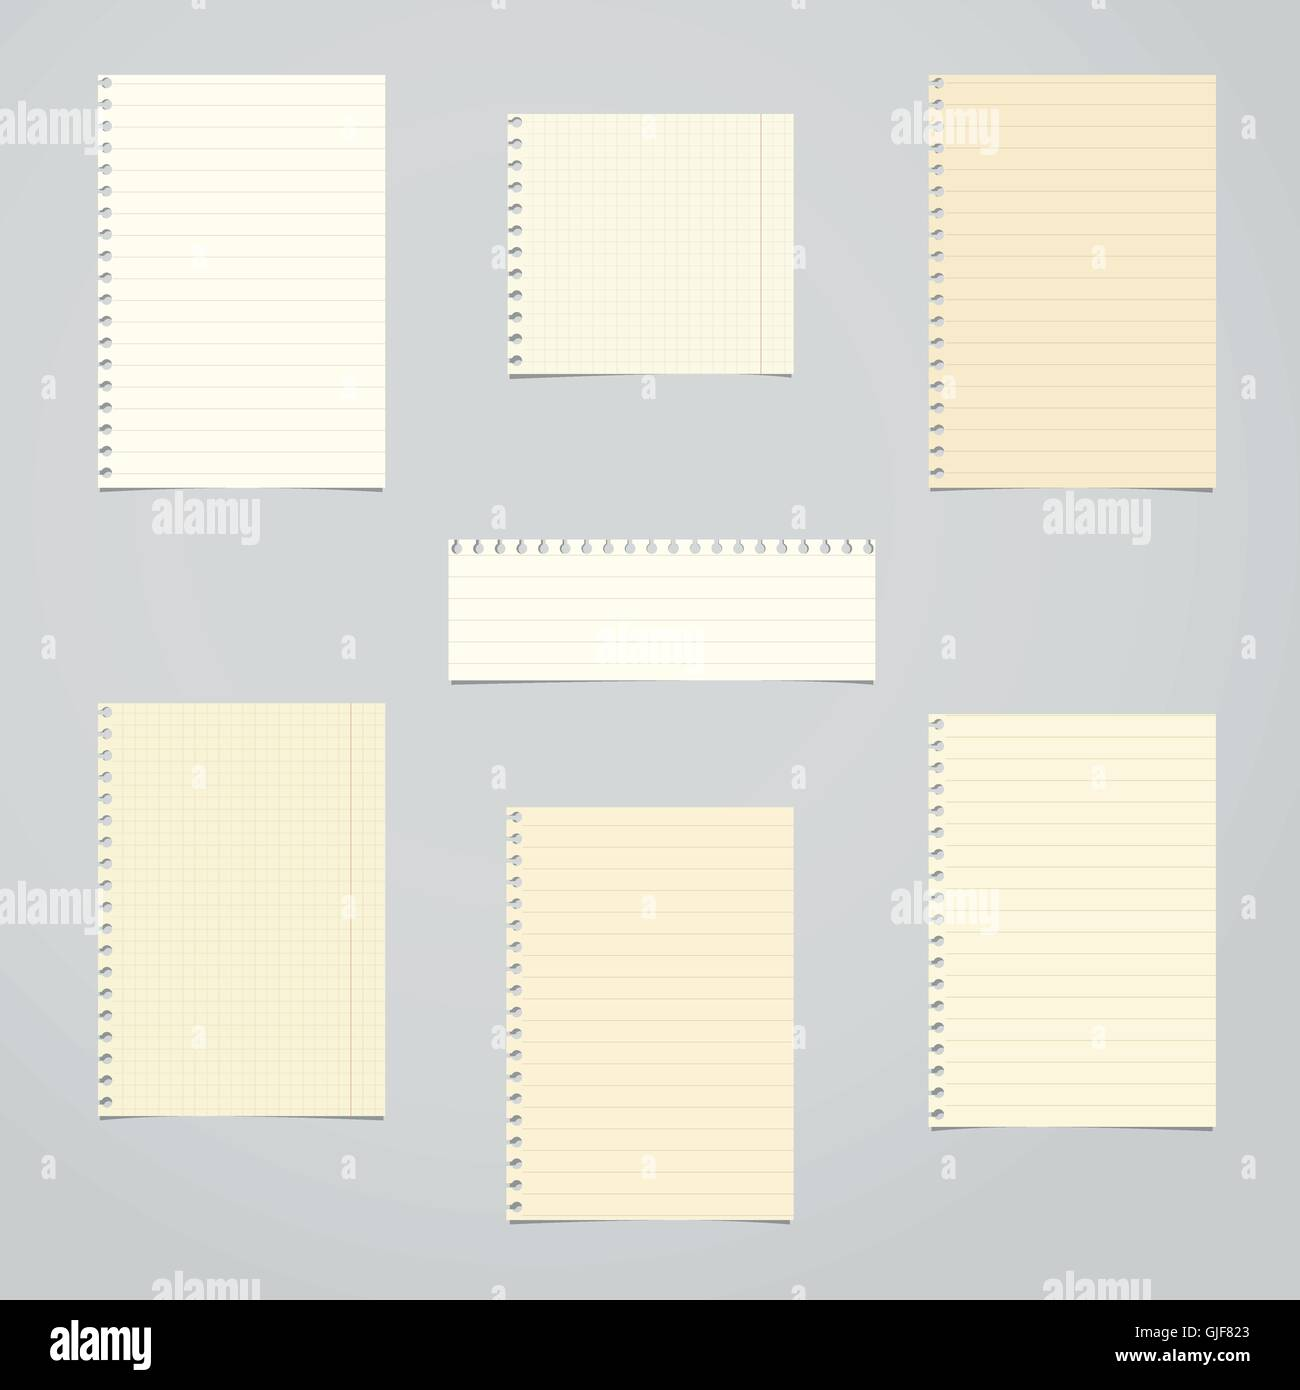 brown ruled and math blank notebook paper sheets stock vector art